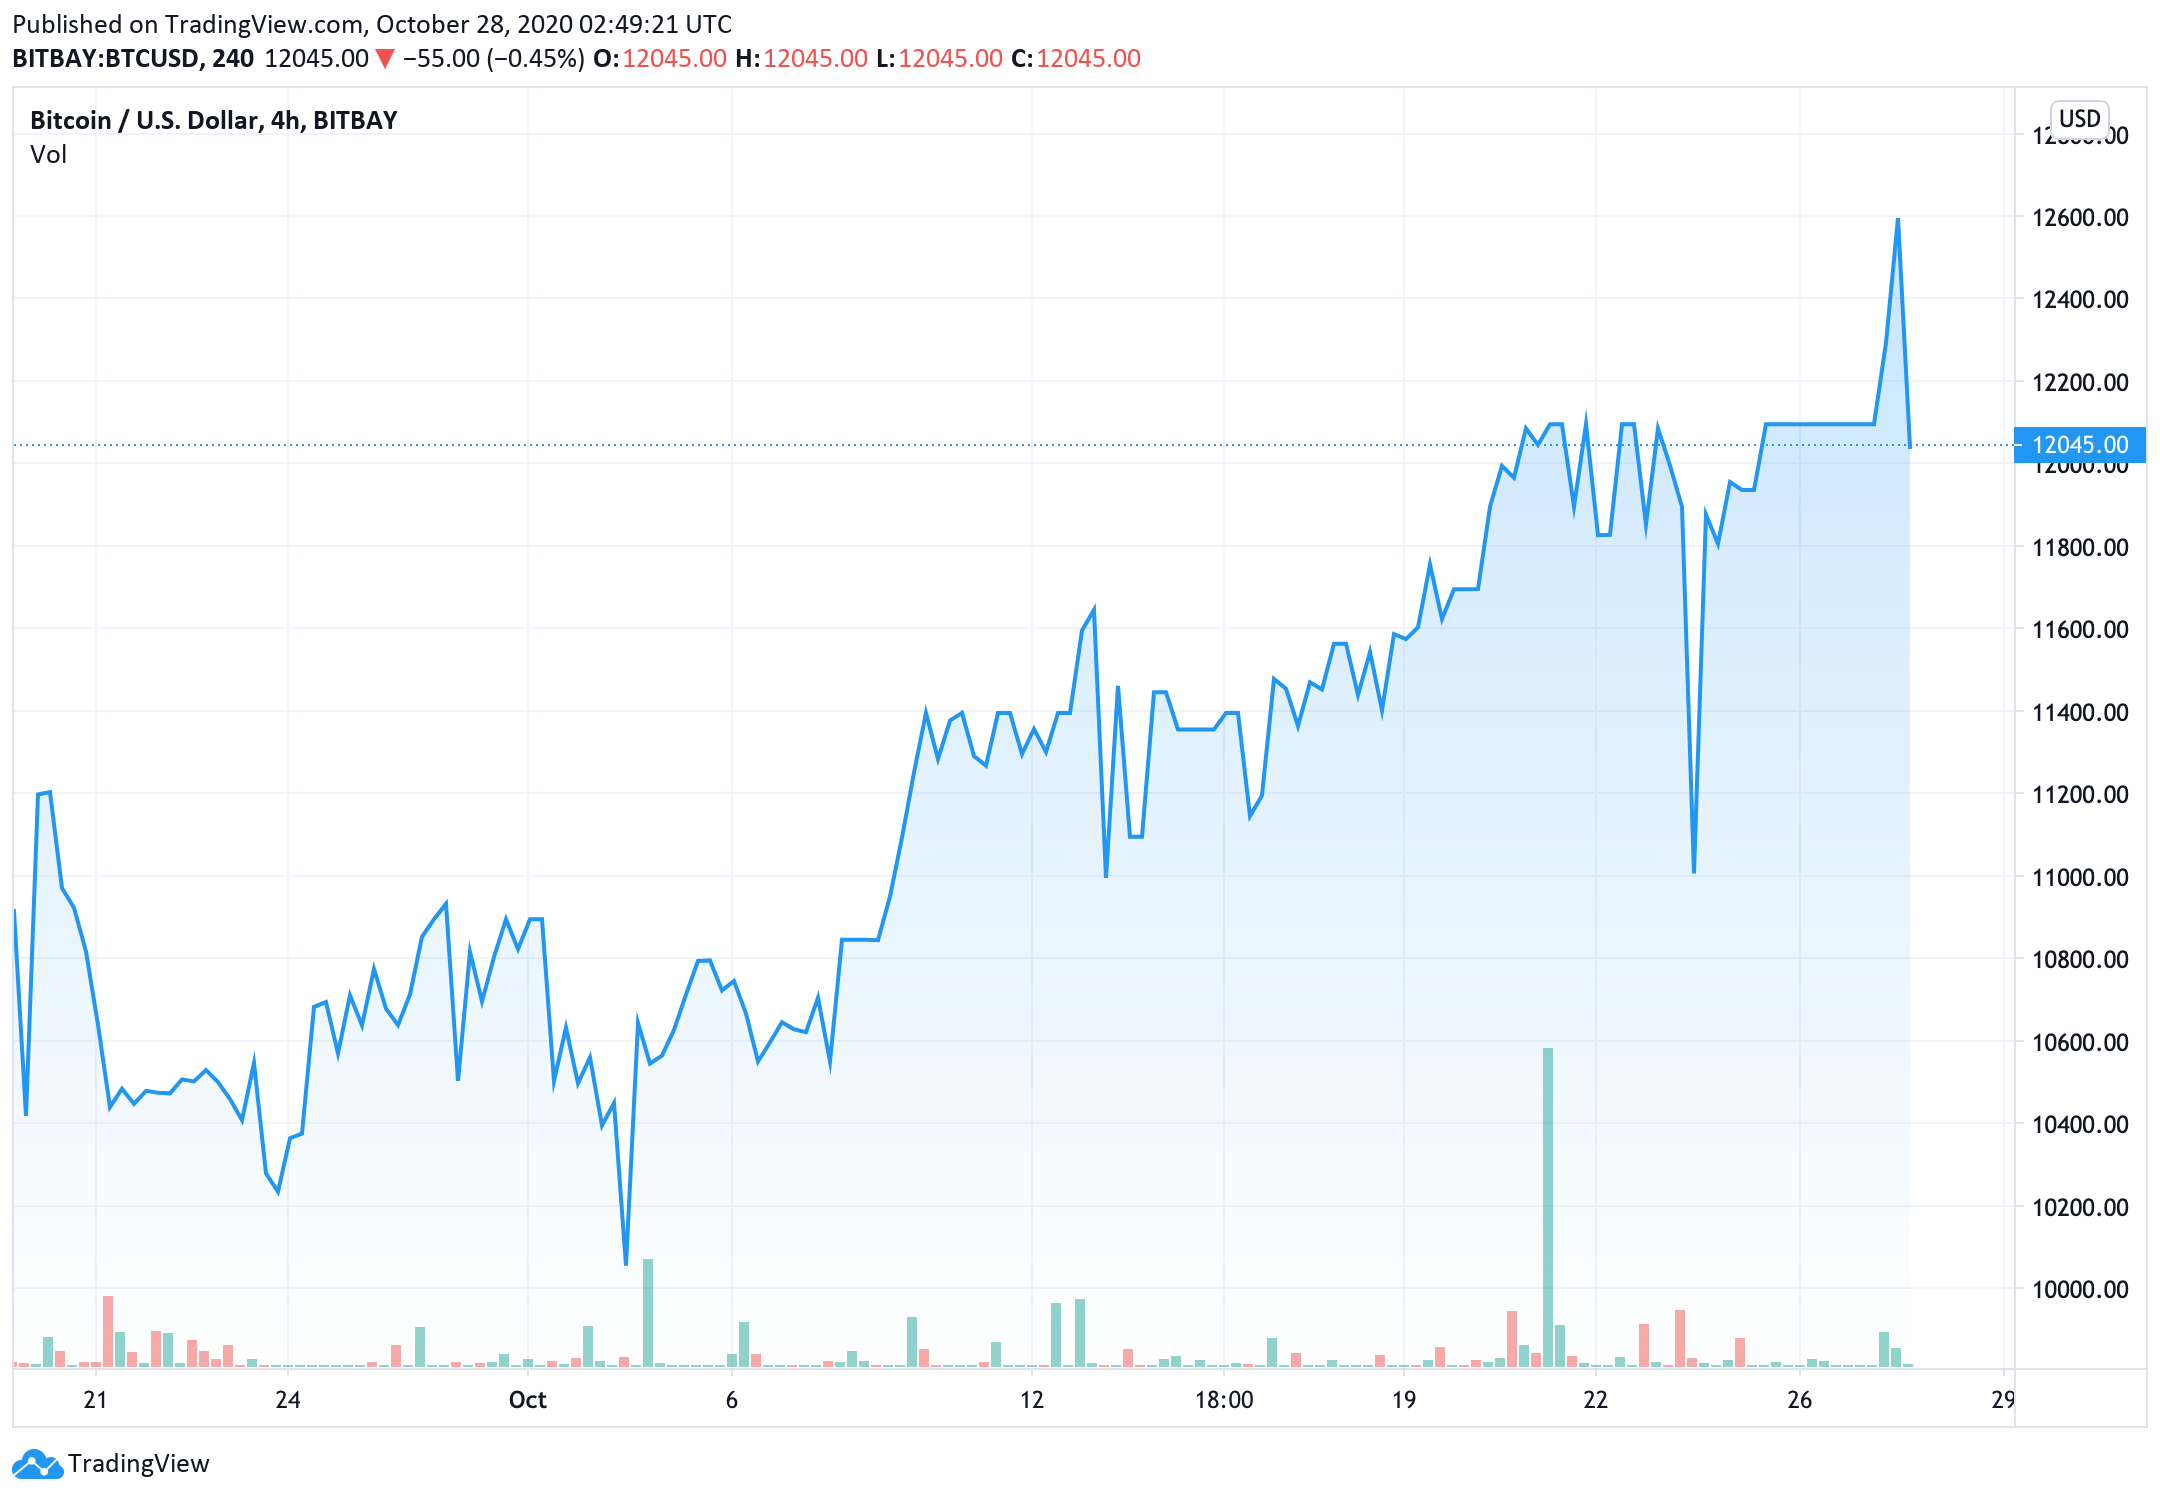 bitcoin-price-is-expected-to-move-higher